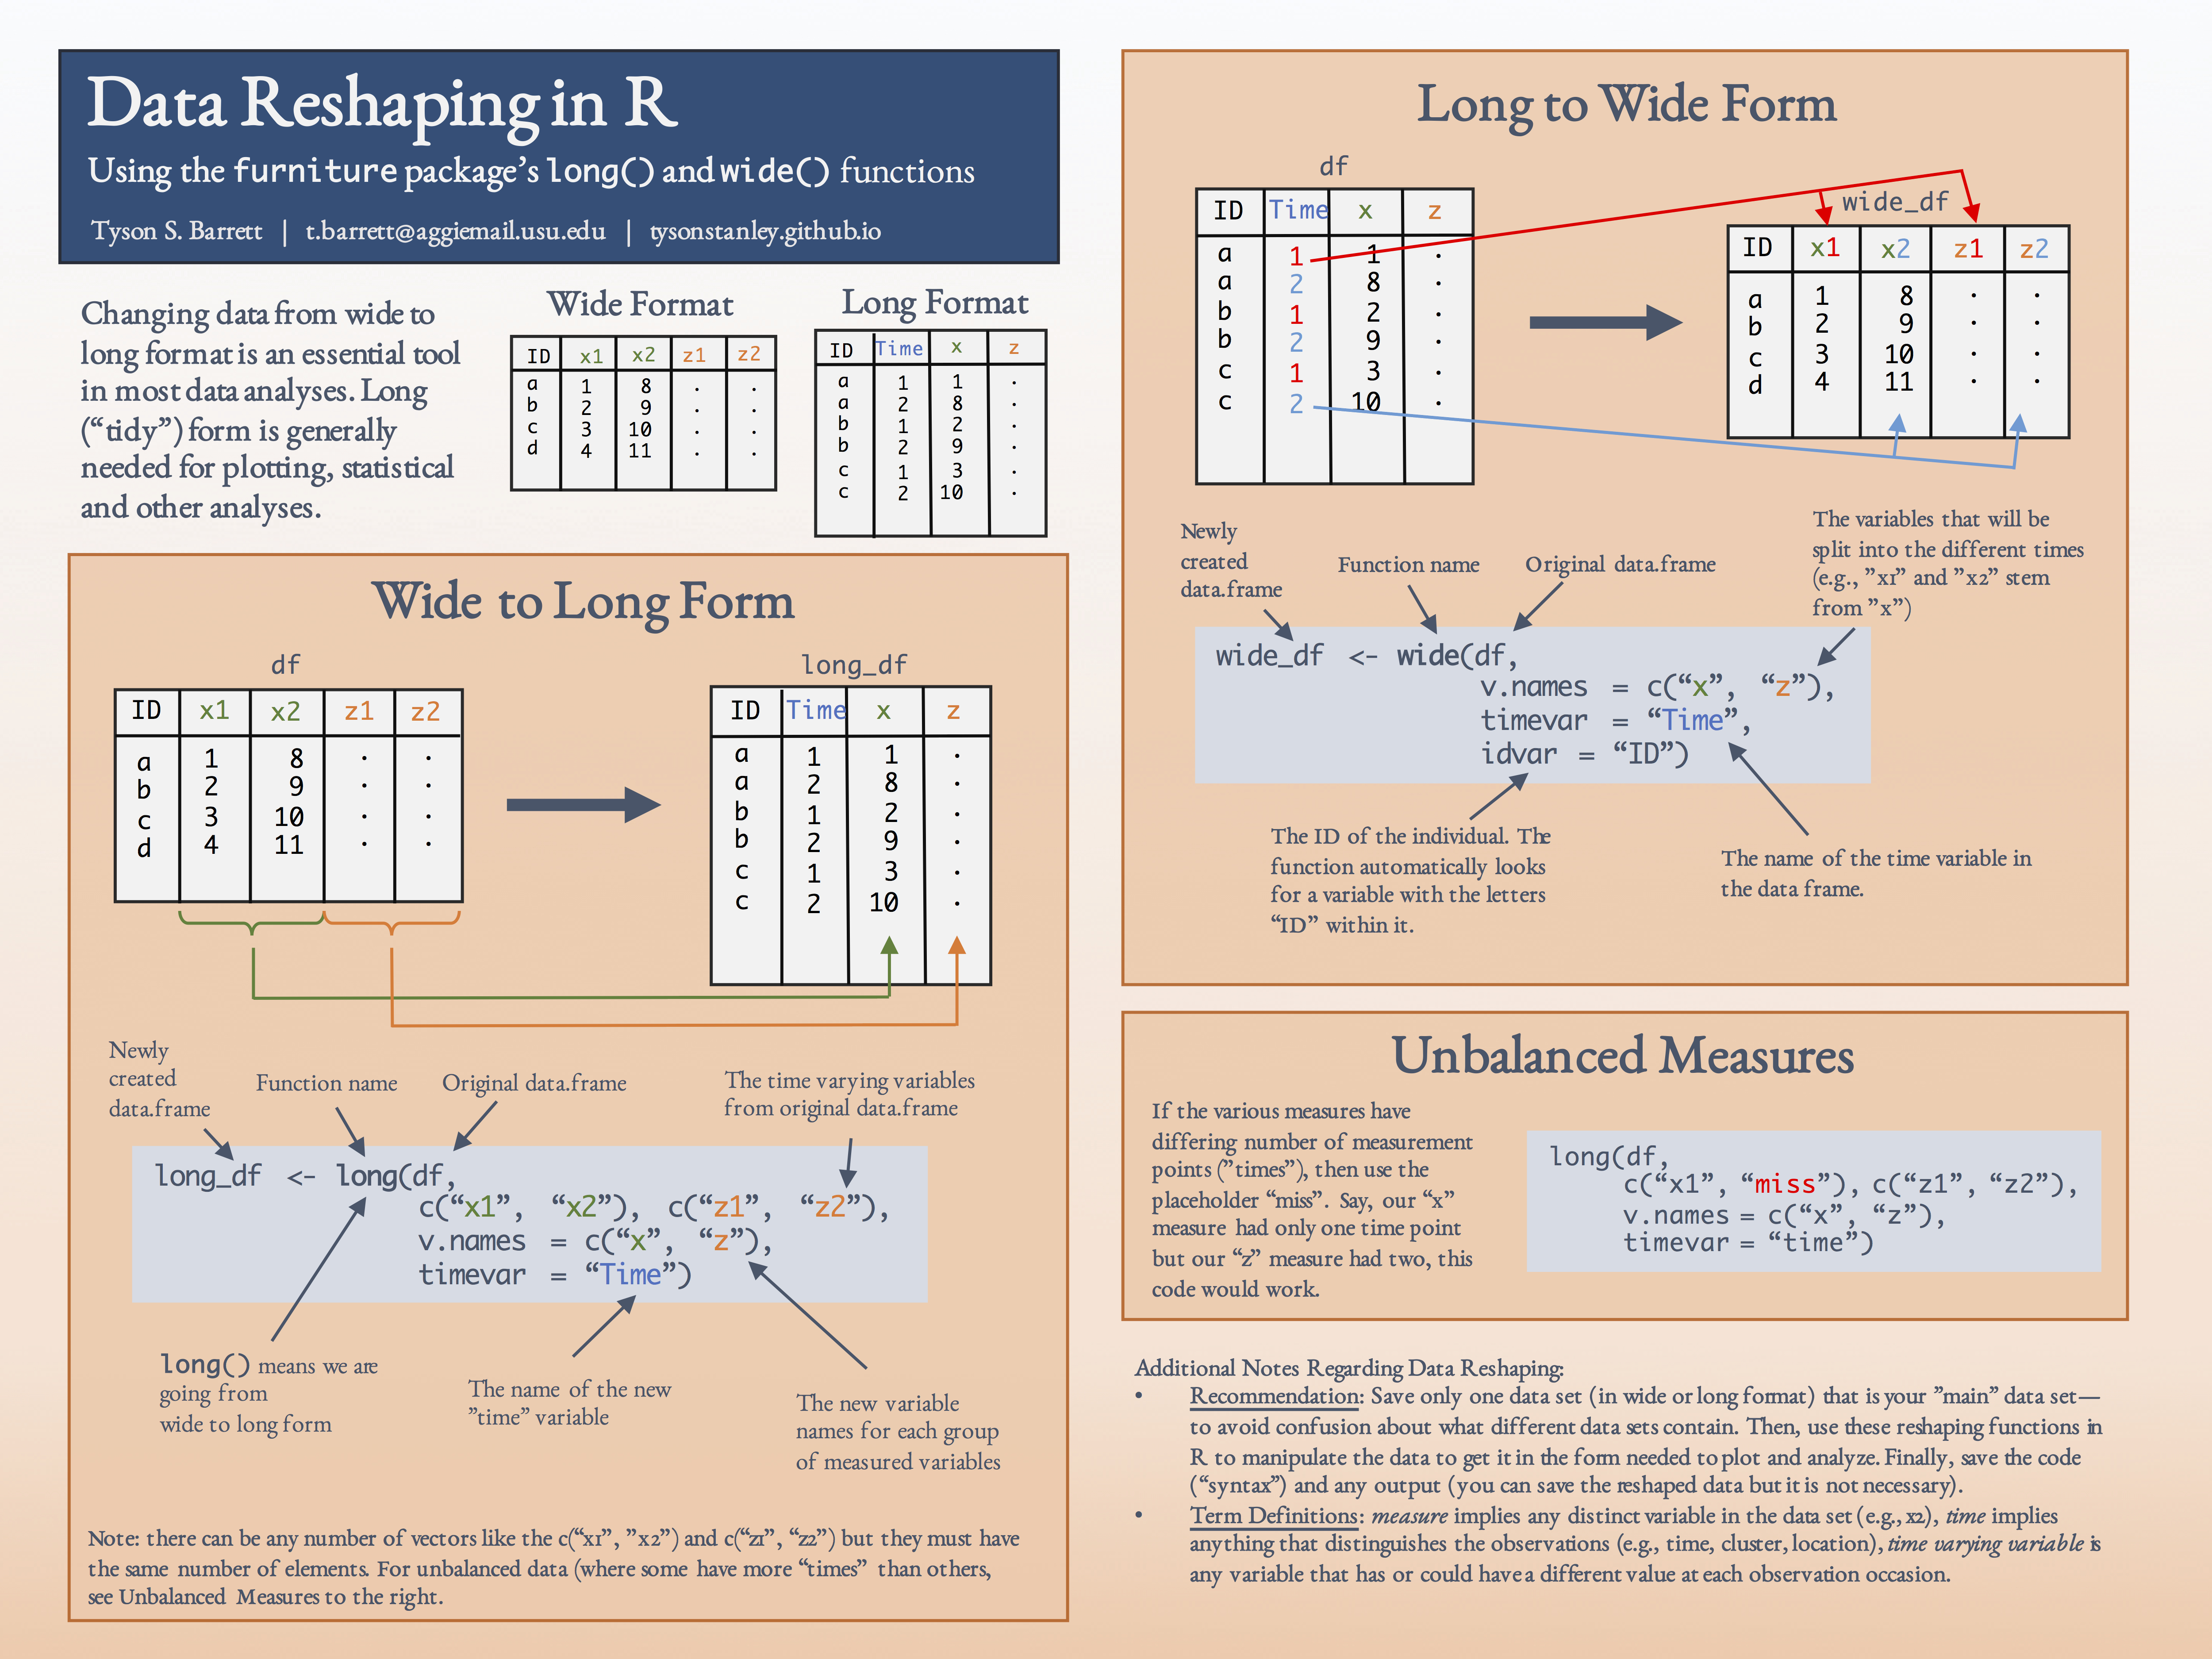 Reshaping Data with Long() and Wide() · TysonBarrett.com